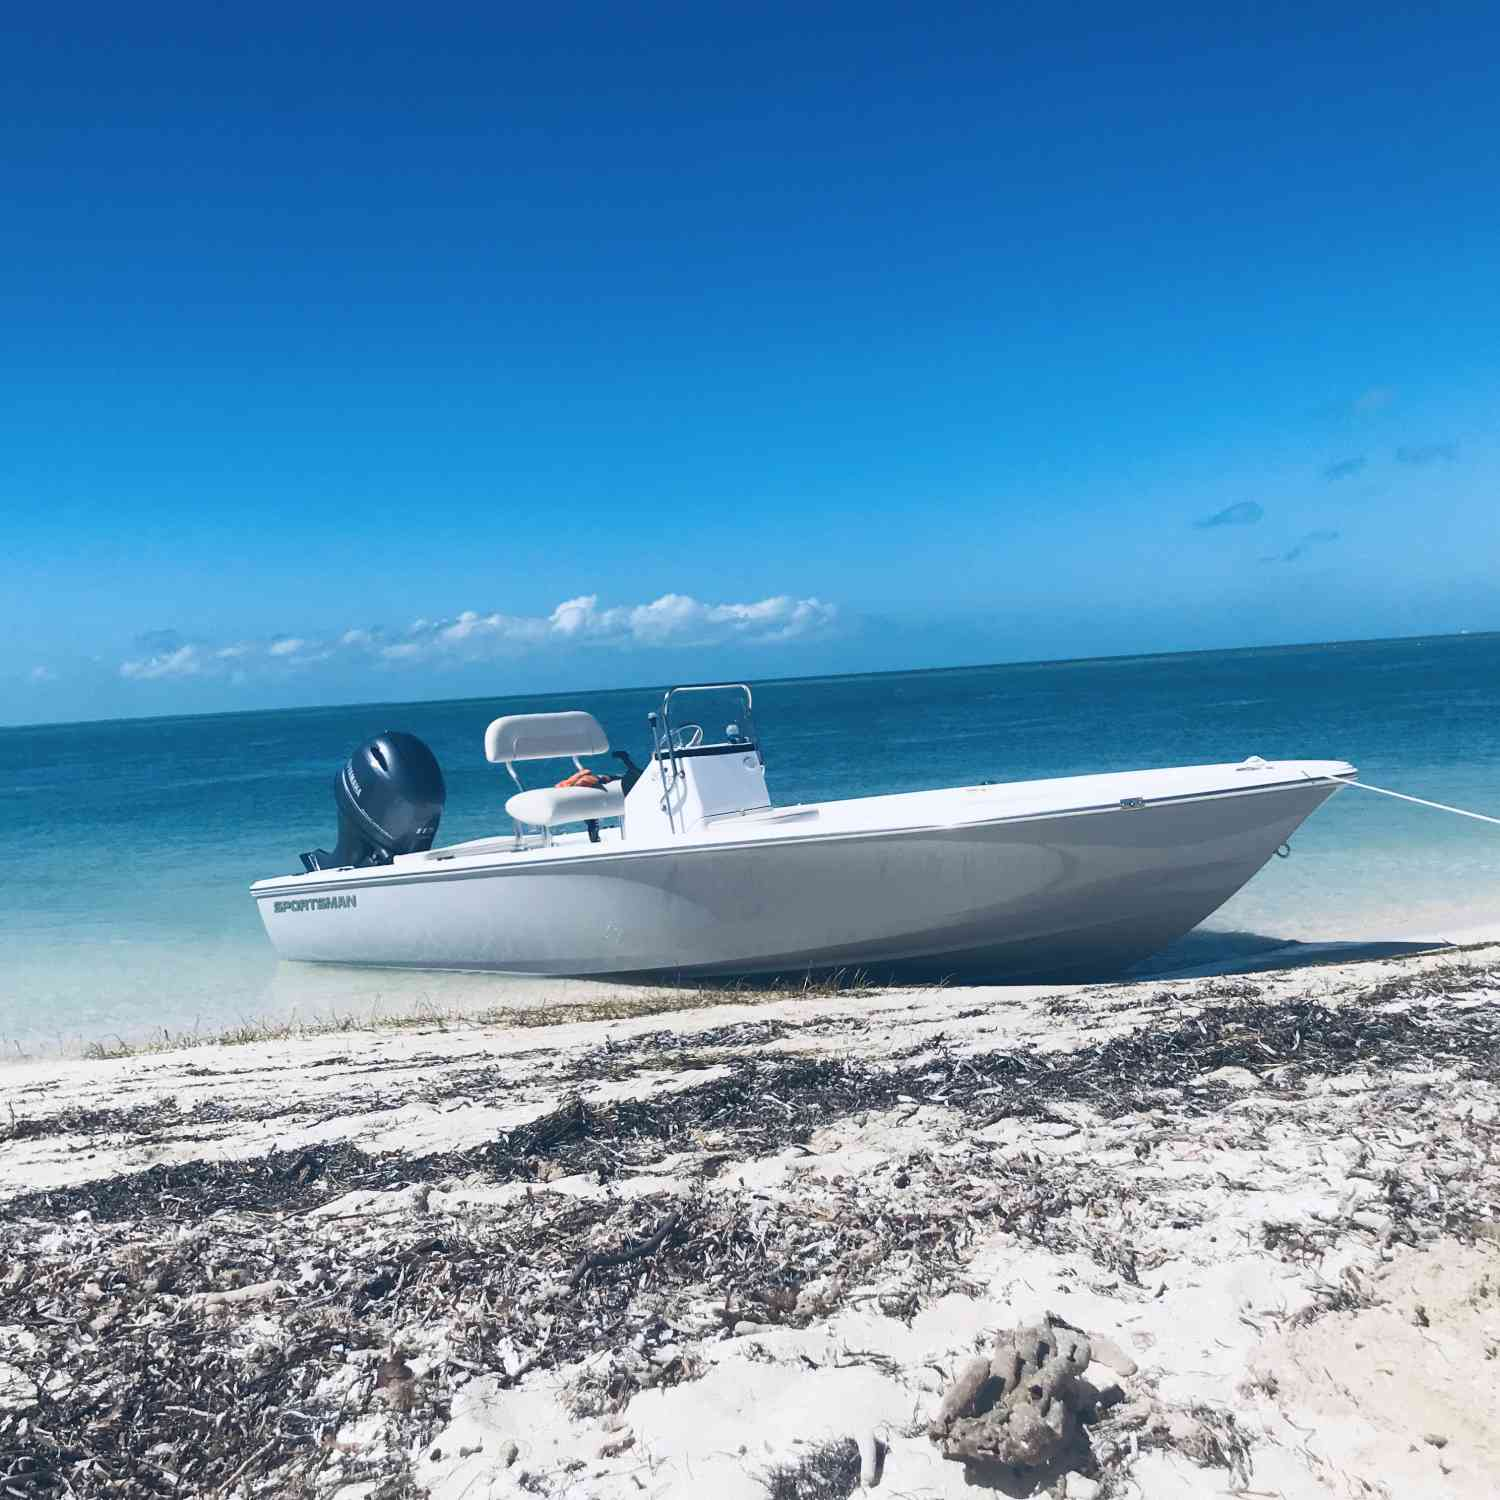 Title: First day out on the water - On board their Sportsman Island Bay 20 Bay Boat - Location: Key West Florida. Participating in the Photo Contest #SportsmanMarch2019